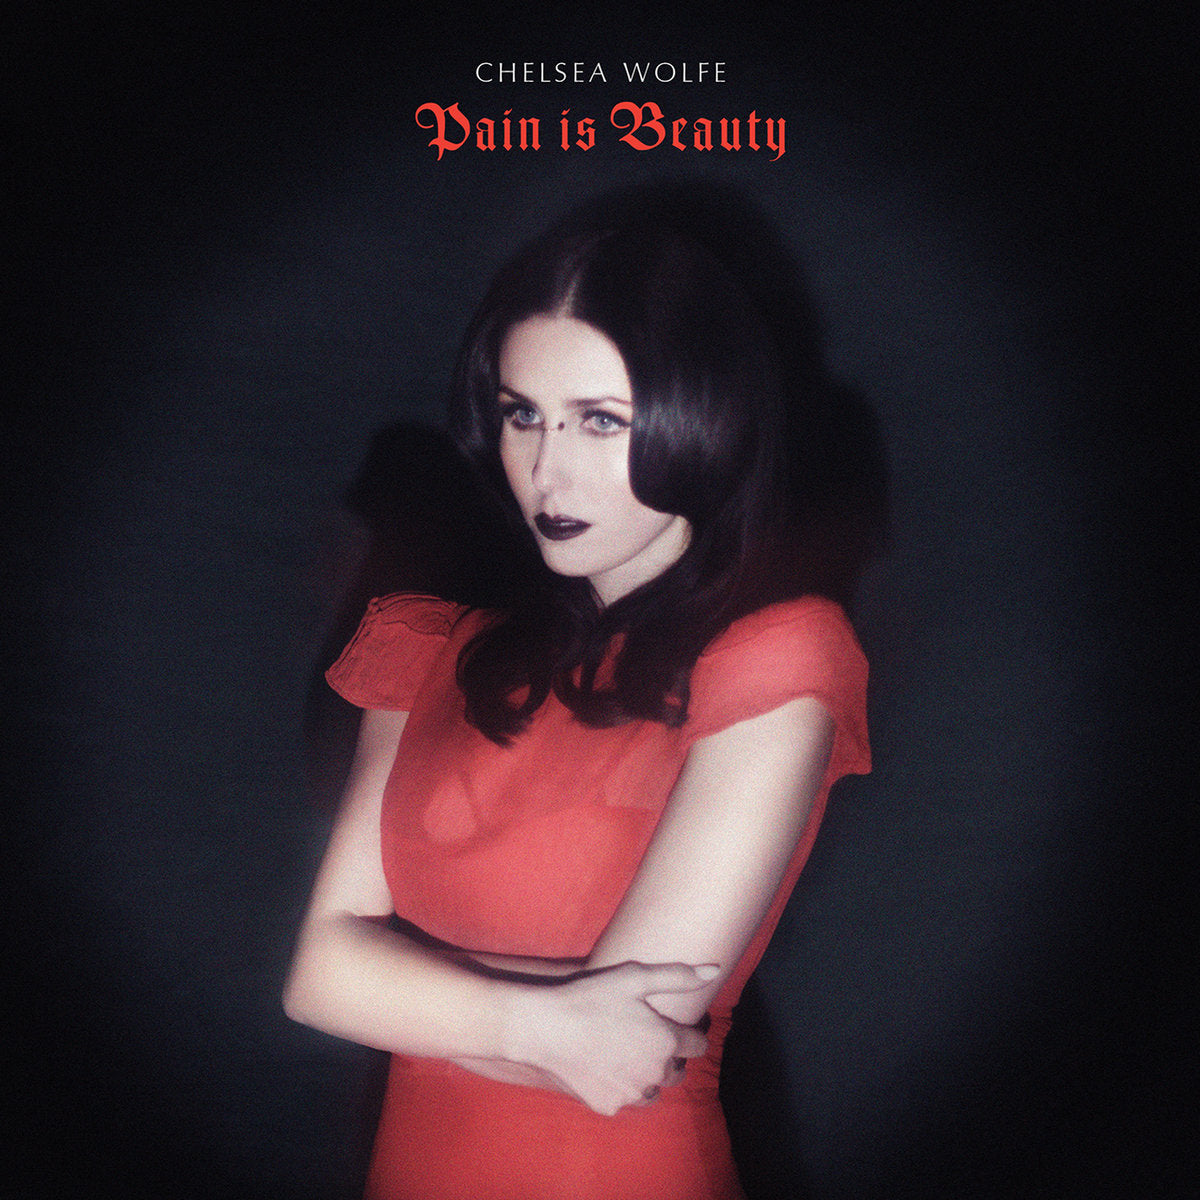 Chelsea Wolfe - Pain is Beauty - 2xLP